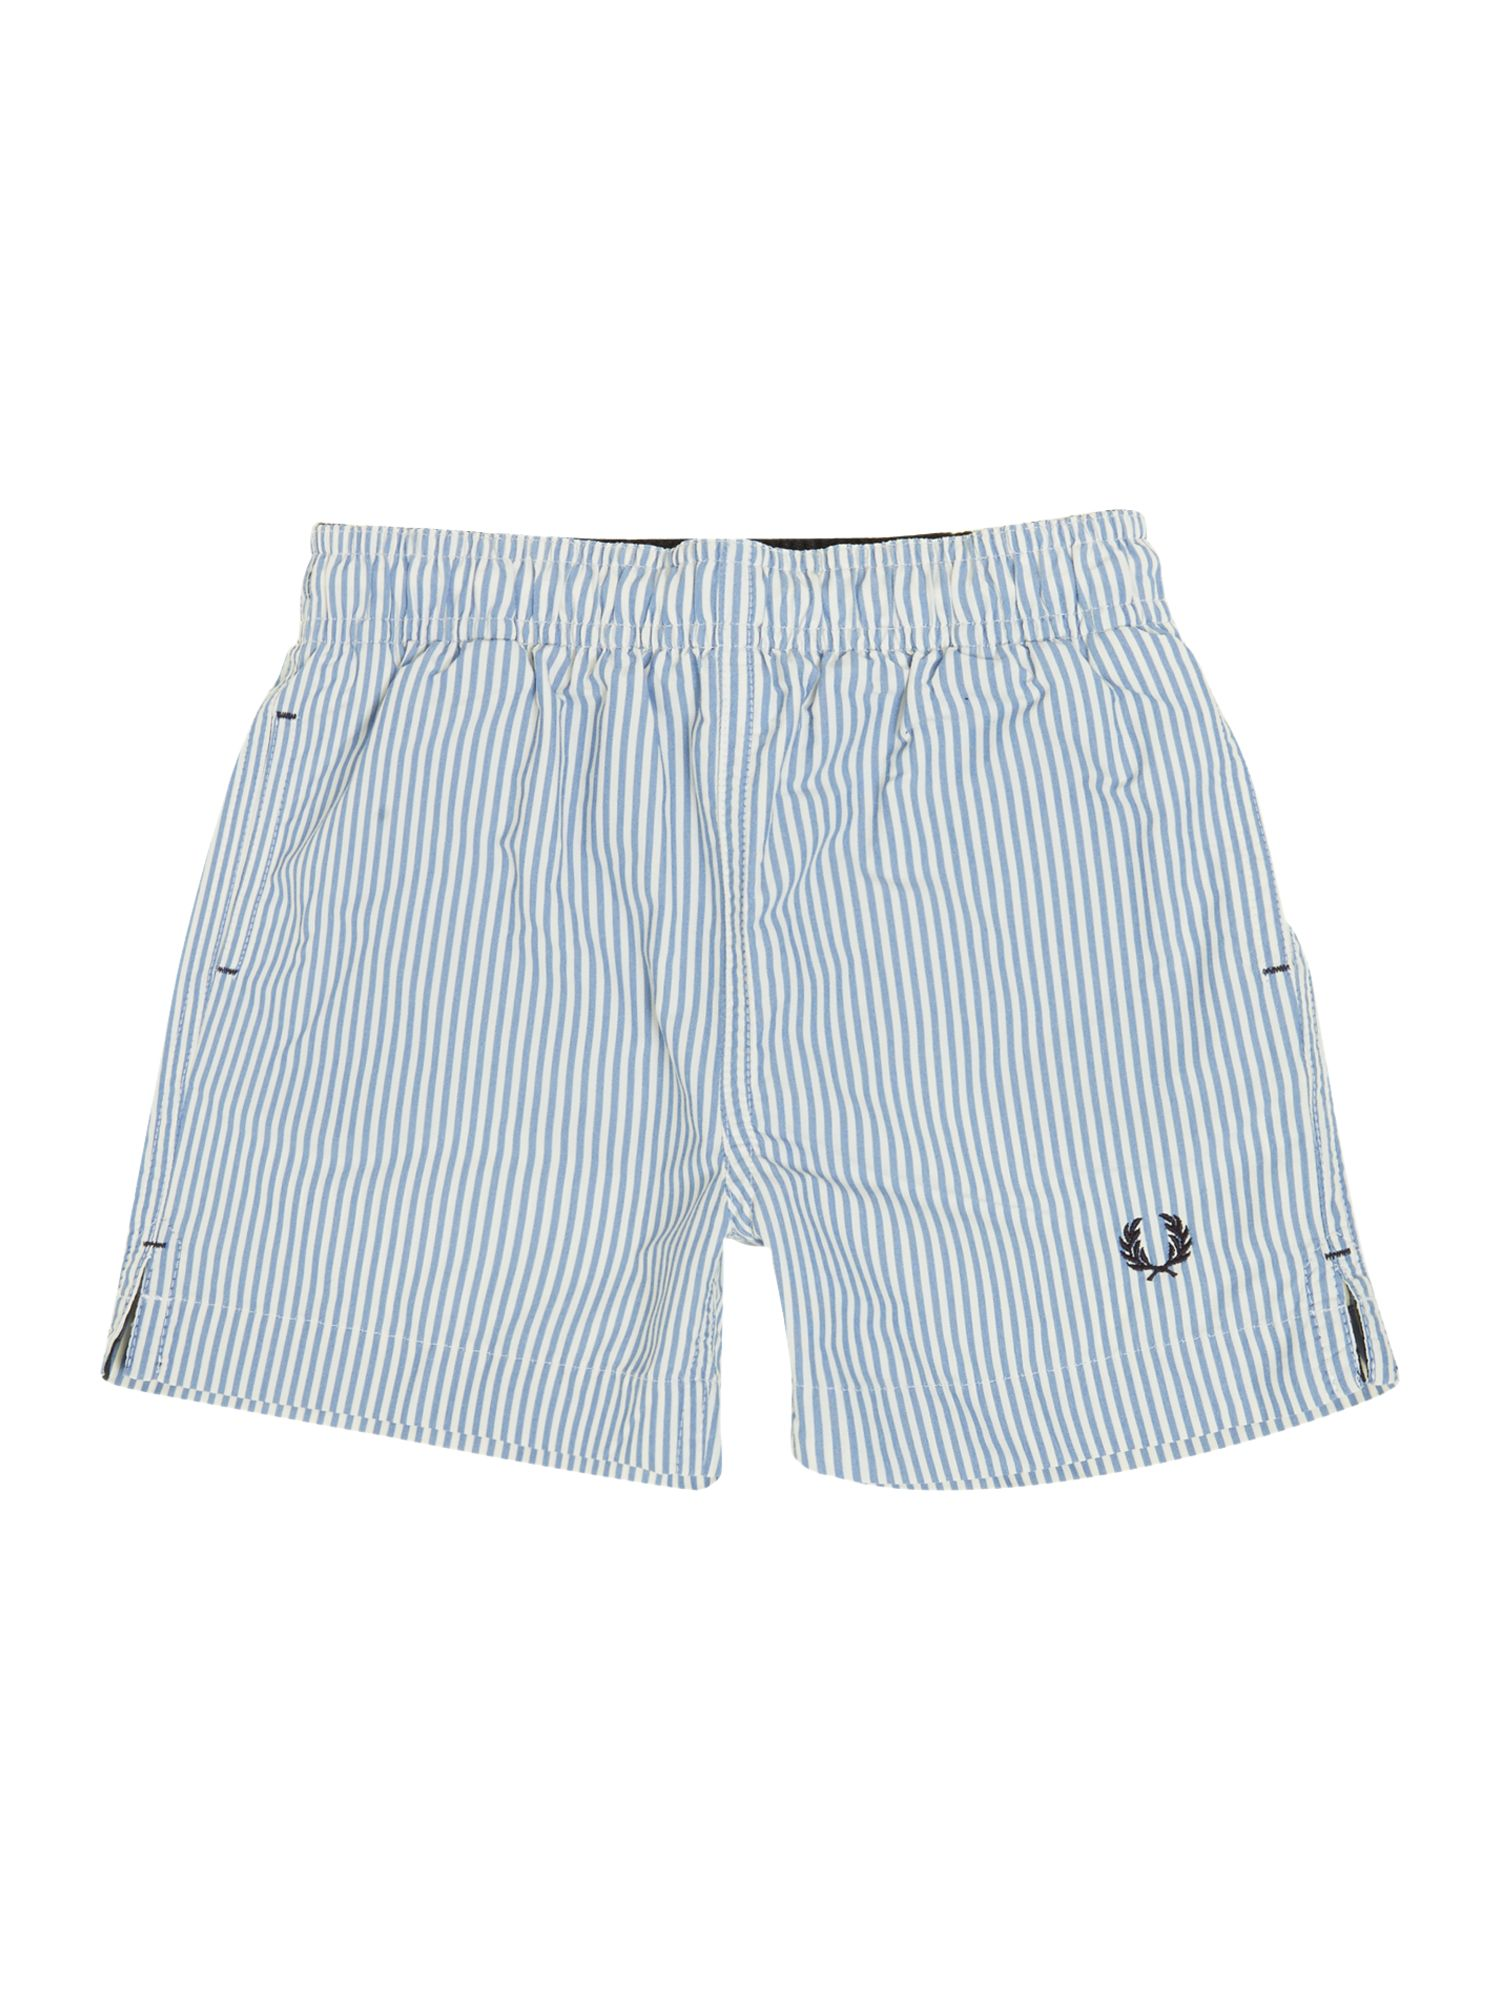 Boys stripe swim shorts